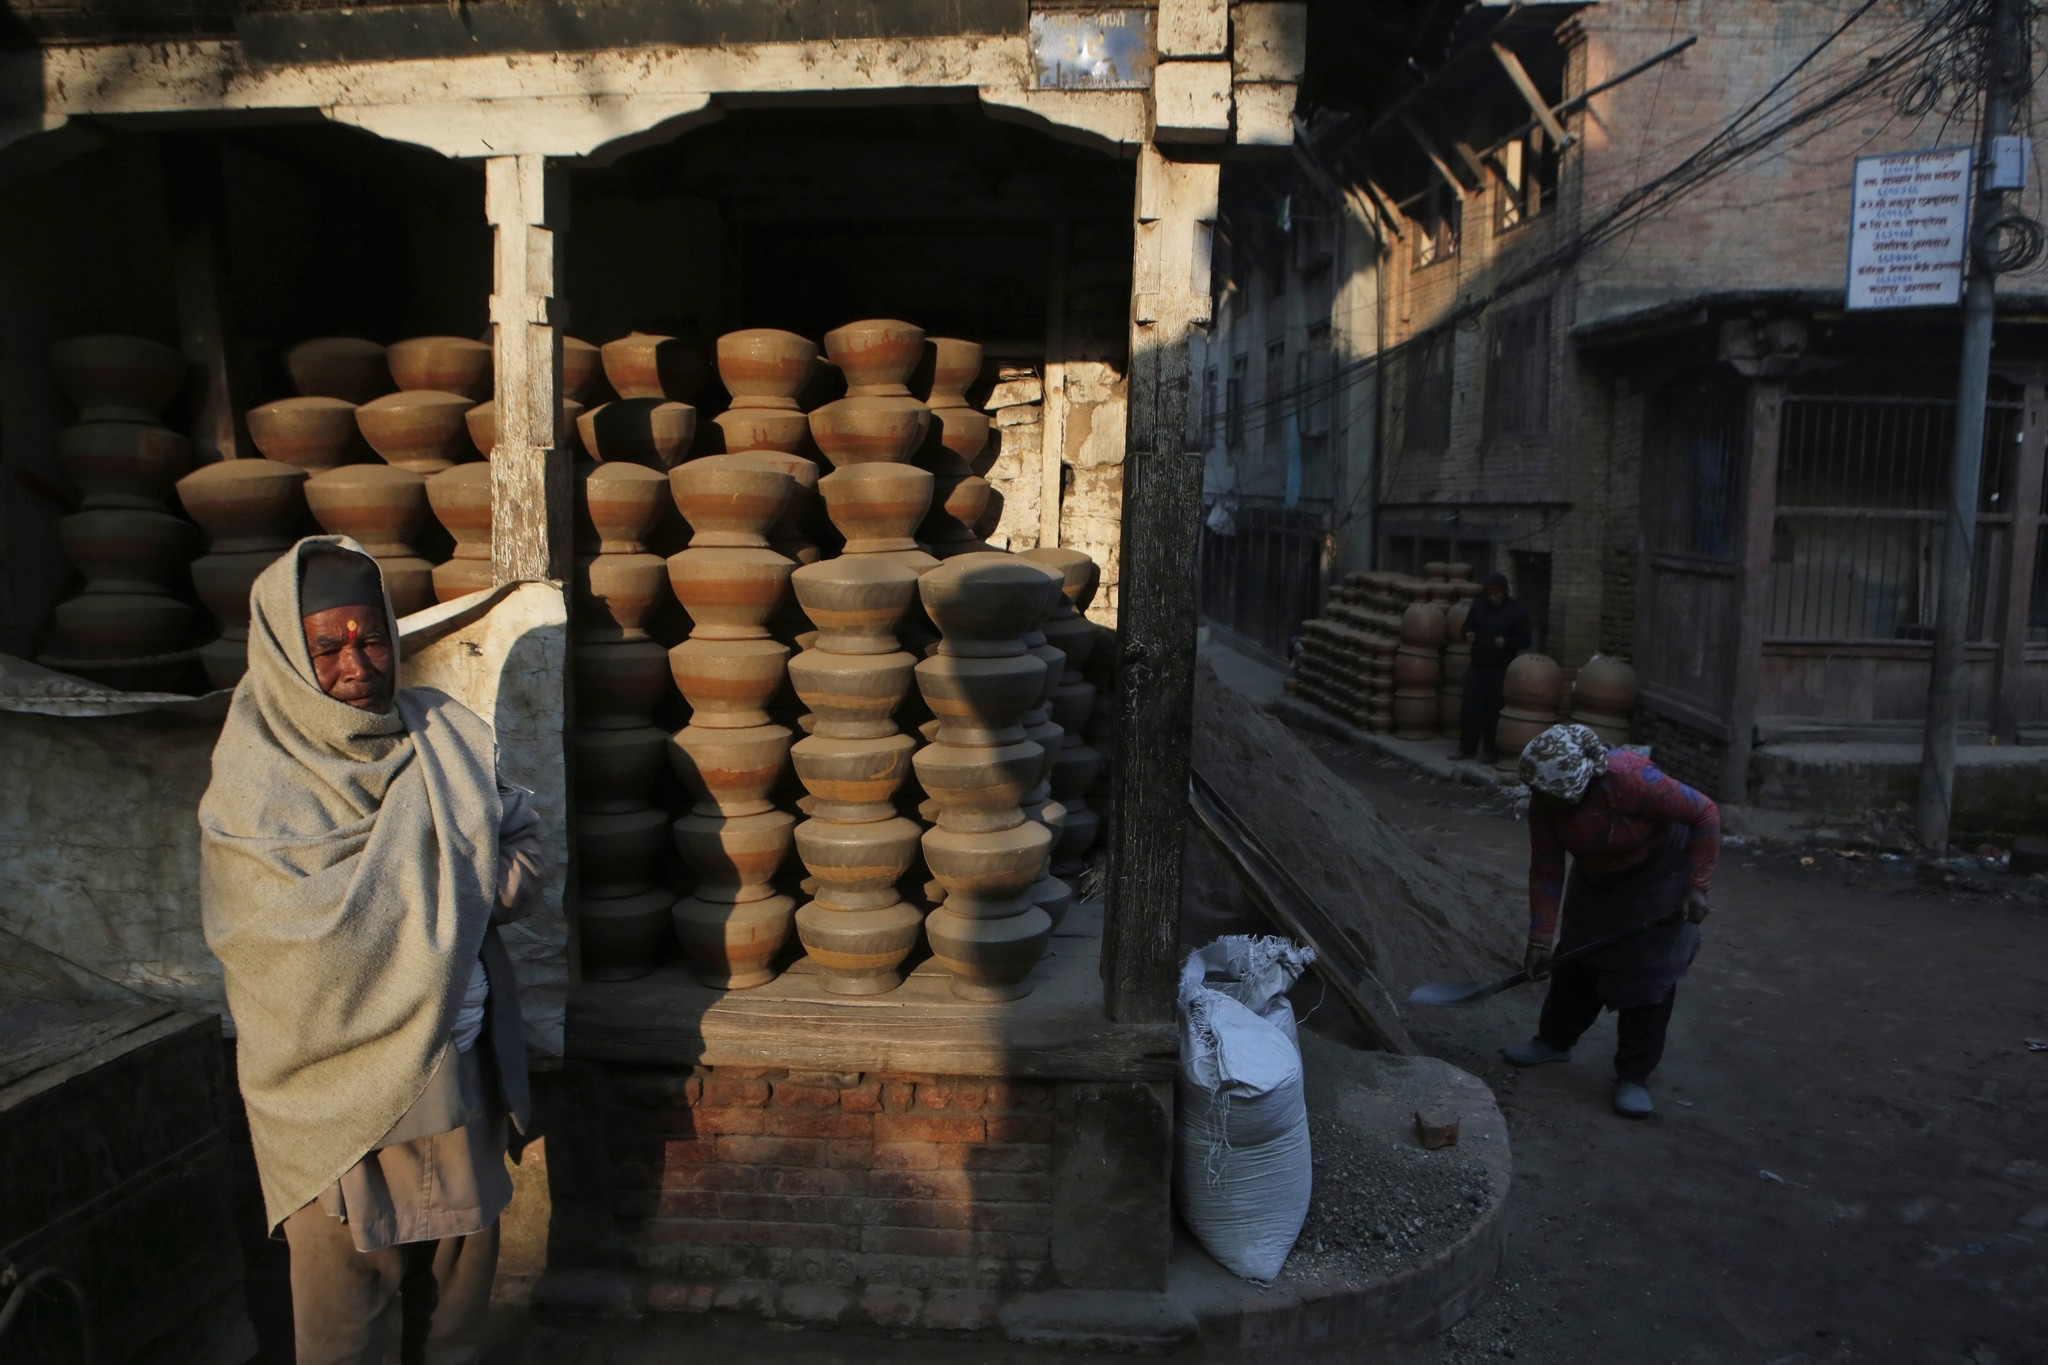 Nepalese Prajapati potter stands beside clay pots neatly stacked up in the ancient Nepali town of Thimi.  (AP Photo)